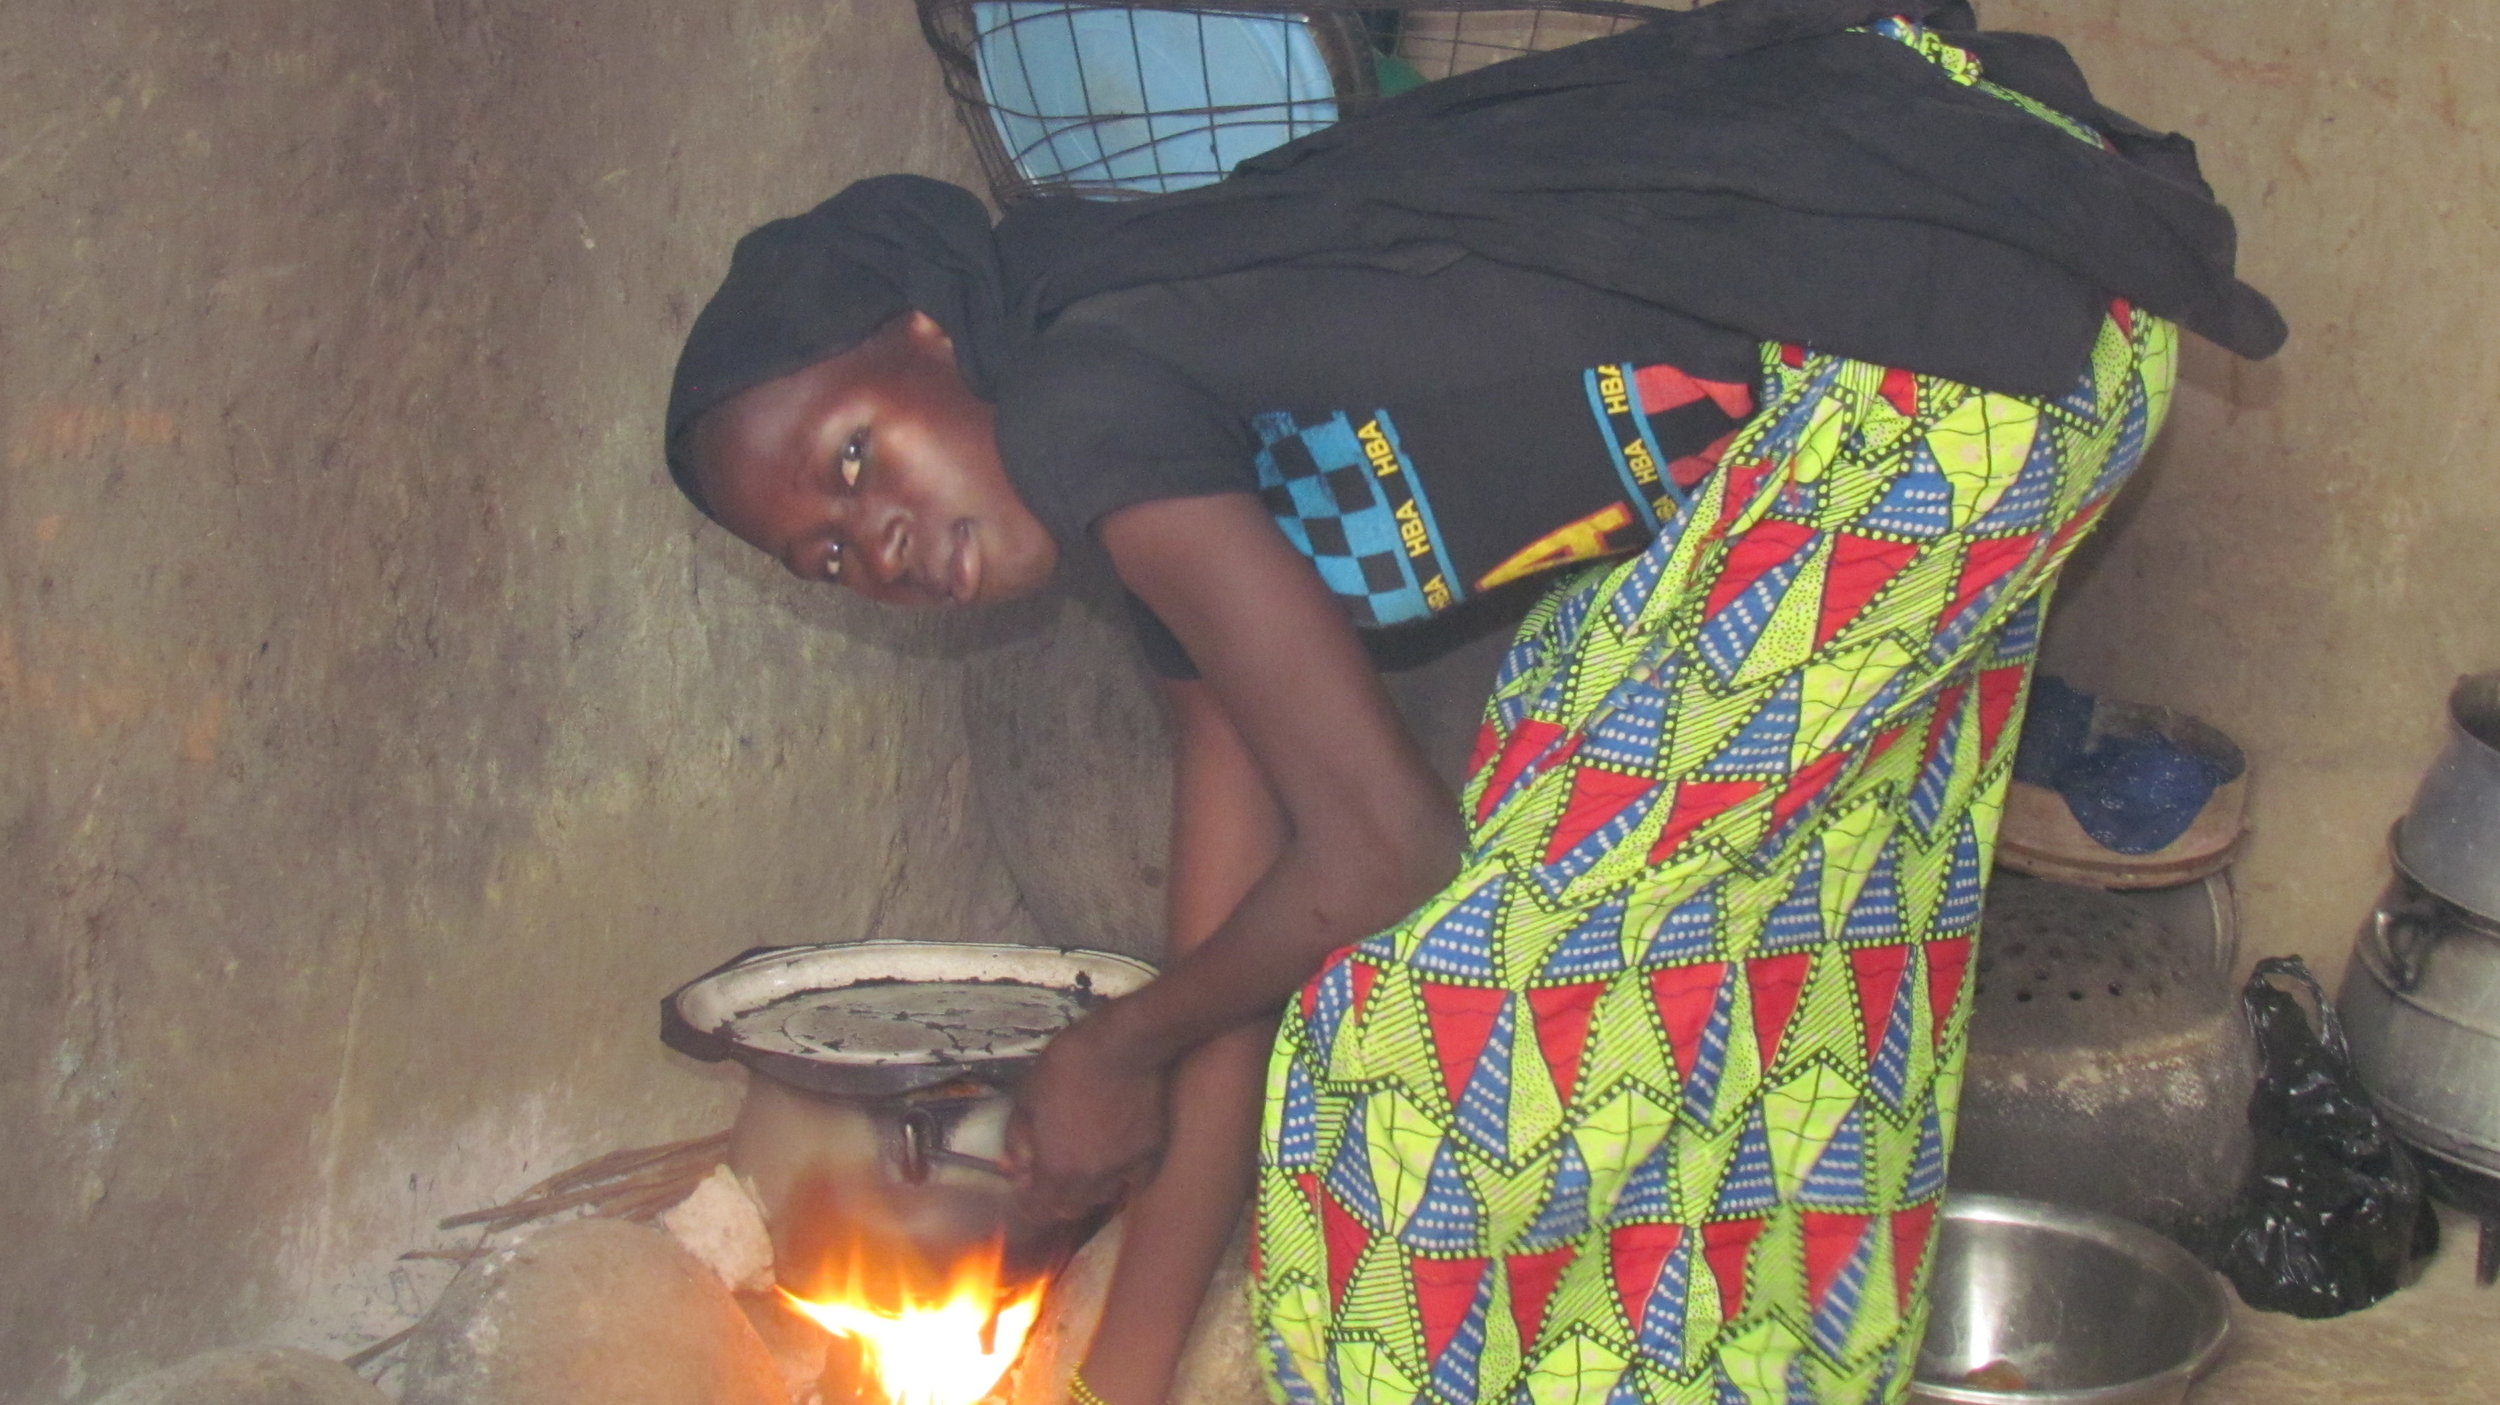 Household chores for girls like Adiaratou are a constant pressure. Here, she cooks a meal for the family.